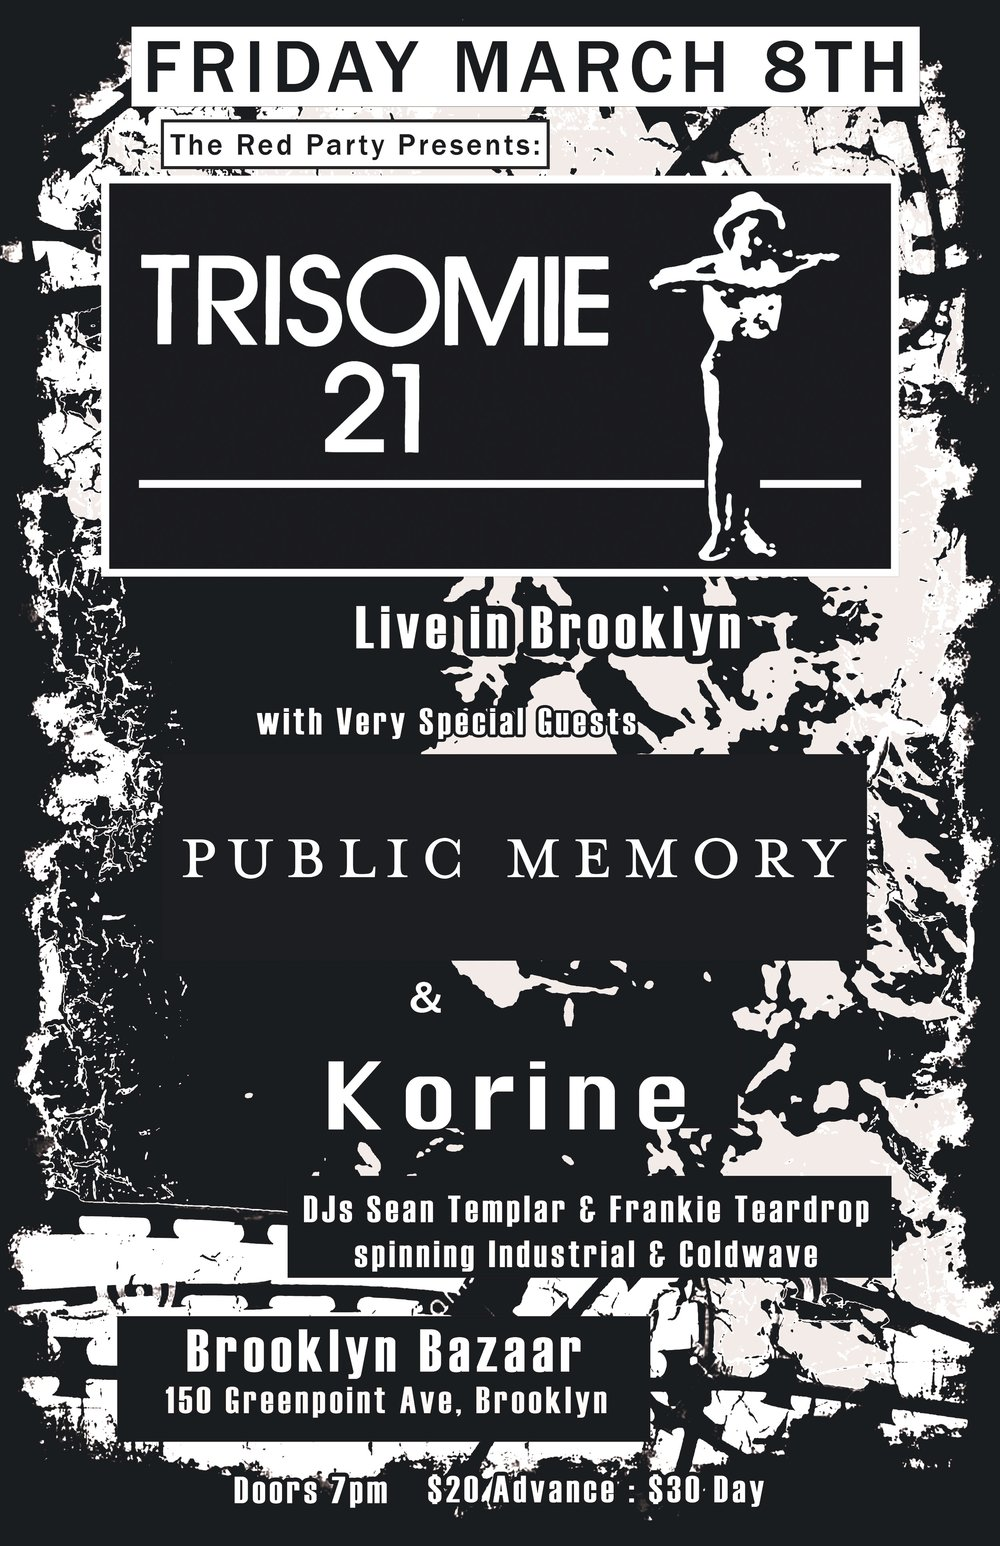 Trisomie 21 - Friday March 8THwith Public Memory & KorineFor the first time in America, The Red Party is proud to present Coldwave pioneers and Post Punk Legends Trisomie 21 along with two very special guests Public Memory & Korine.TRISOMIE 21https://soundcloud.com/user-428790978http://www.trisomie21.tv/https://www.facebook.com/trisomie21/with special guestsPublic Memoryhttps://publicmemory.bandcamp.com/https://www.facebook.com/thepublicmemory/&Korinehttps://www.facebook.com/korineband/https://korine.bandcamp.com/album/new-arrangementsDJs Sean Templar & Frankie Teardropspin Coldwave & Post Punk throughout the Night!Brooklyn Bazaar150 Greenpoint Ave, Brooklyn$20 Advance / $30 Day Doors 7pm - Midnight